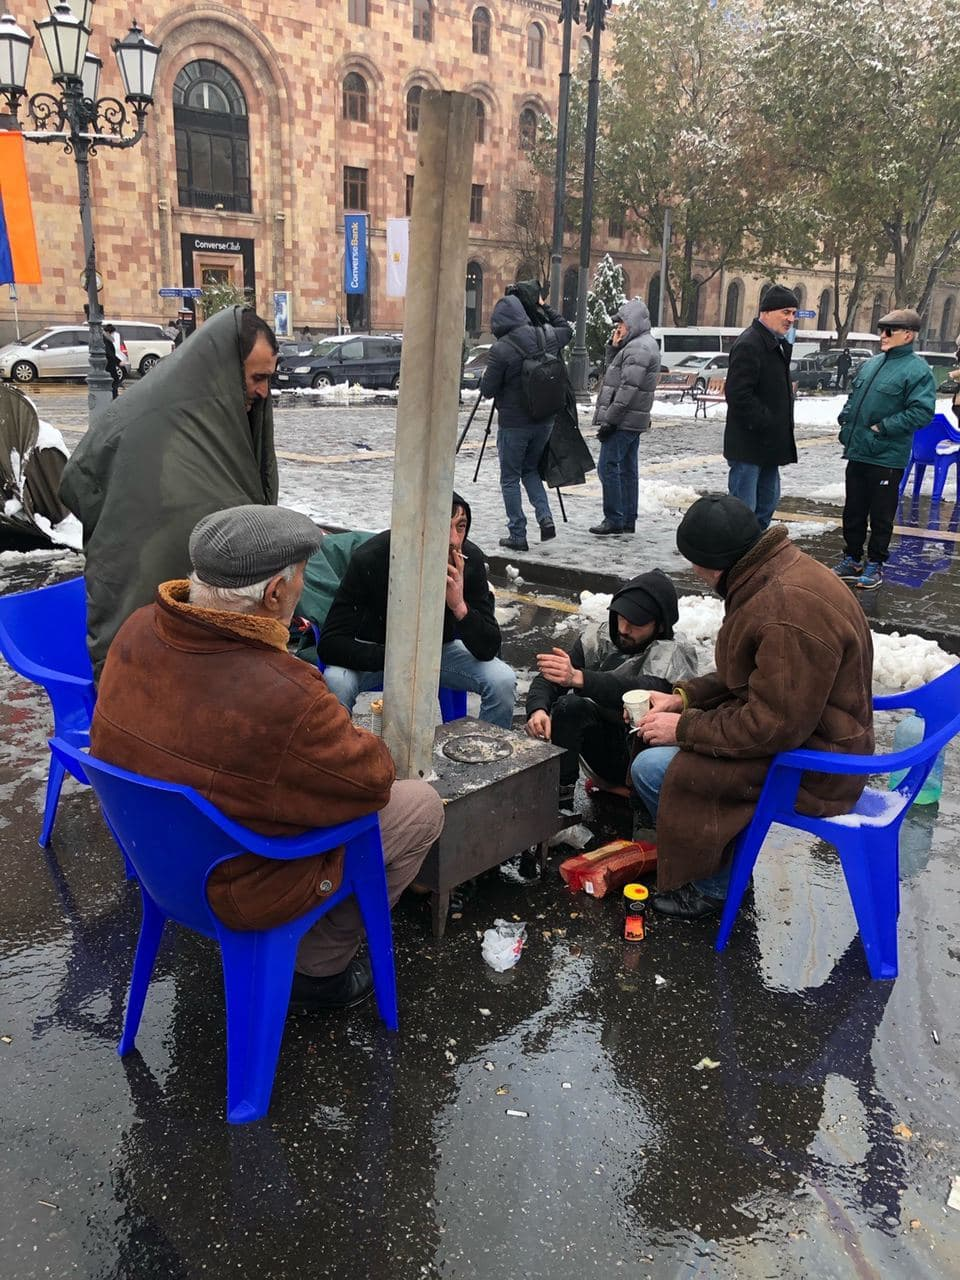 Tents In Front Of Armenian Parliament, As More Videos Of Alleged Azerbaijan Brutality Surface